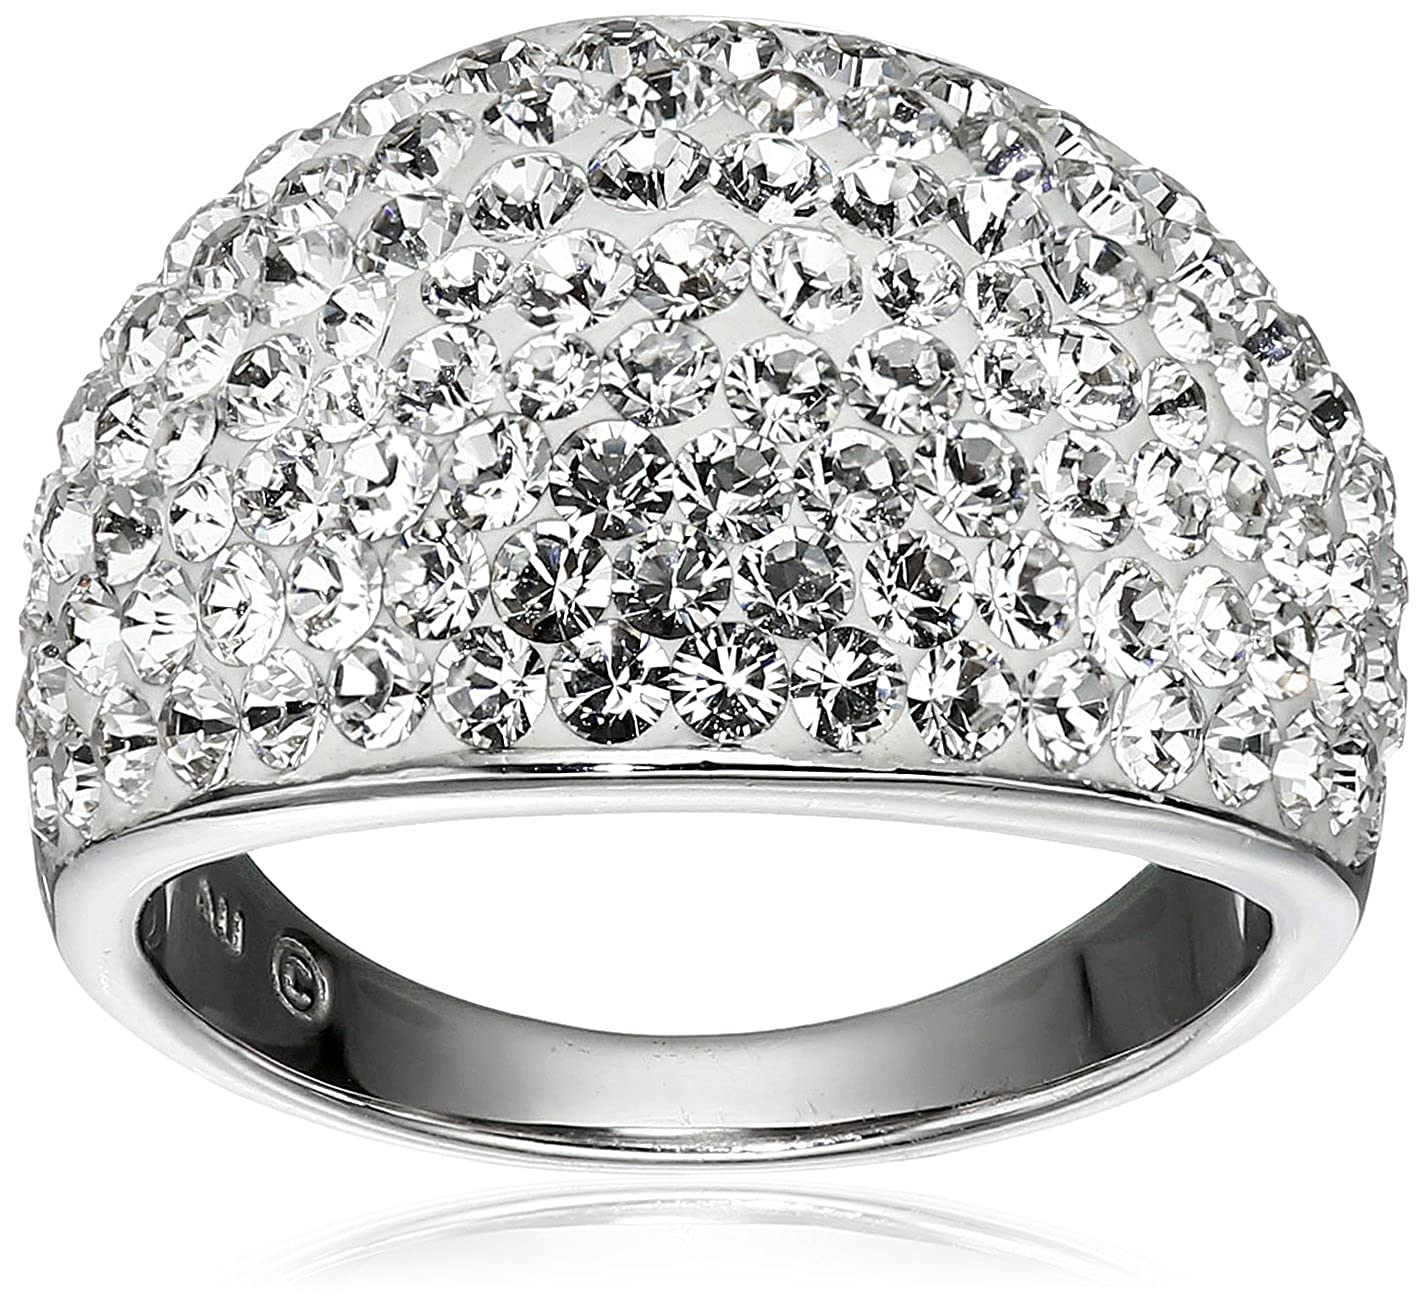 Sterling Silver Ring with Swarovski Elements, Size 7 Amazon Collection SF1292CWIQ7A